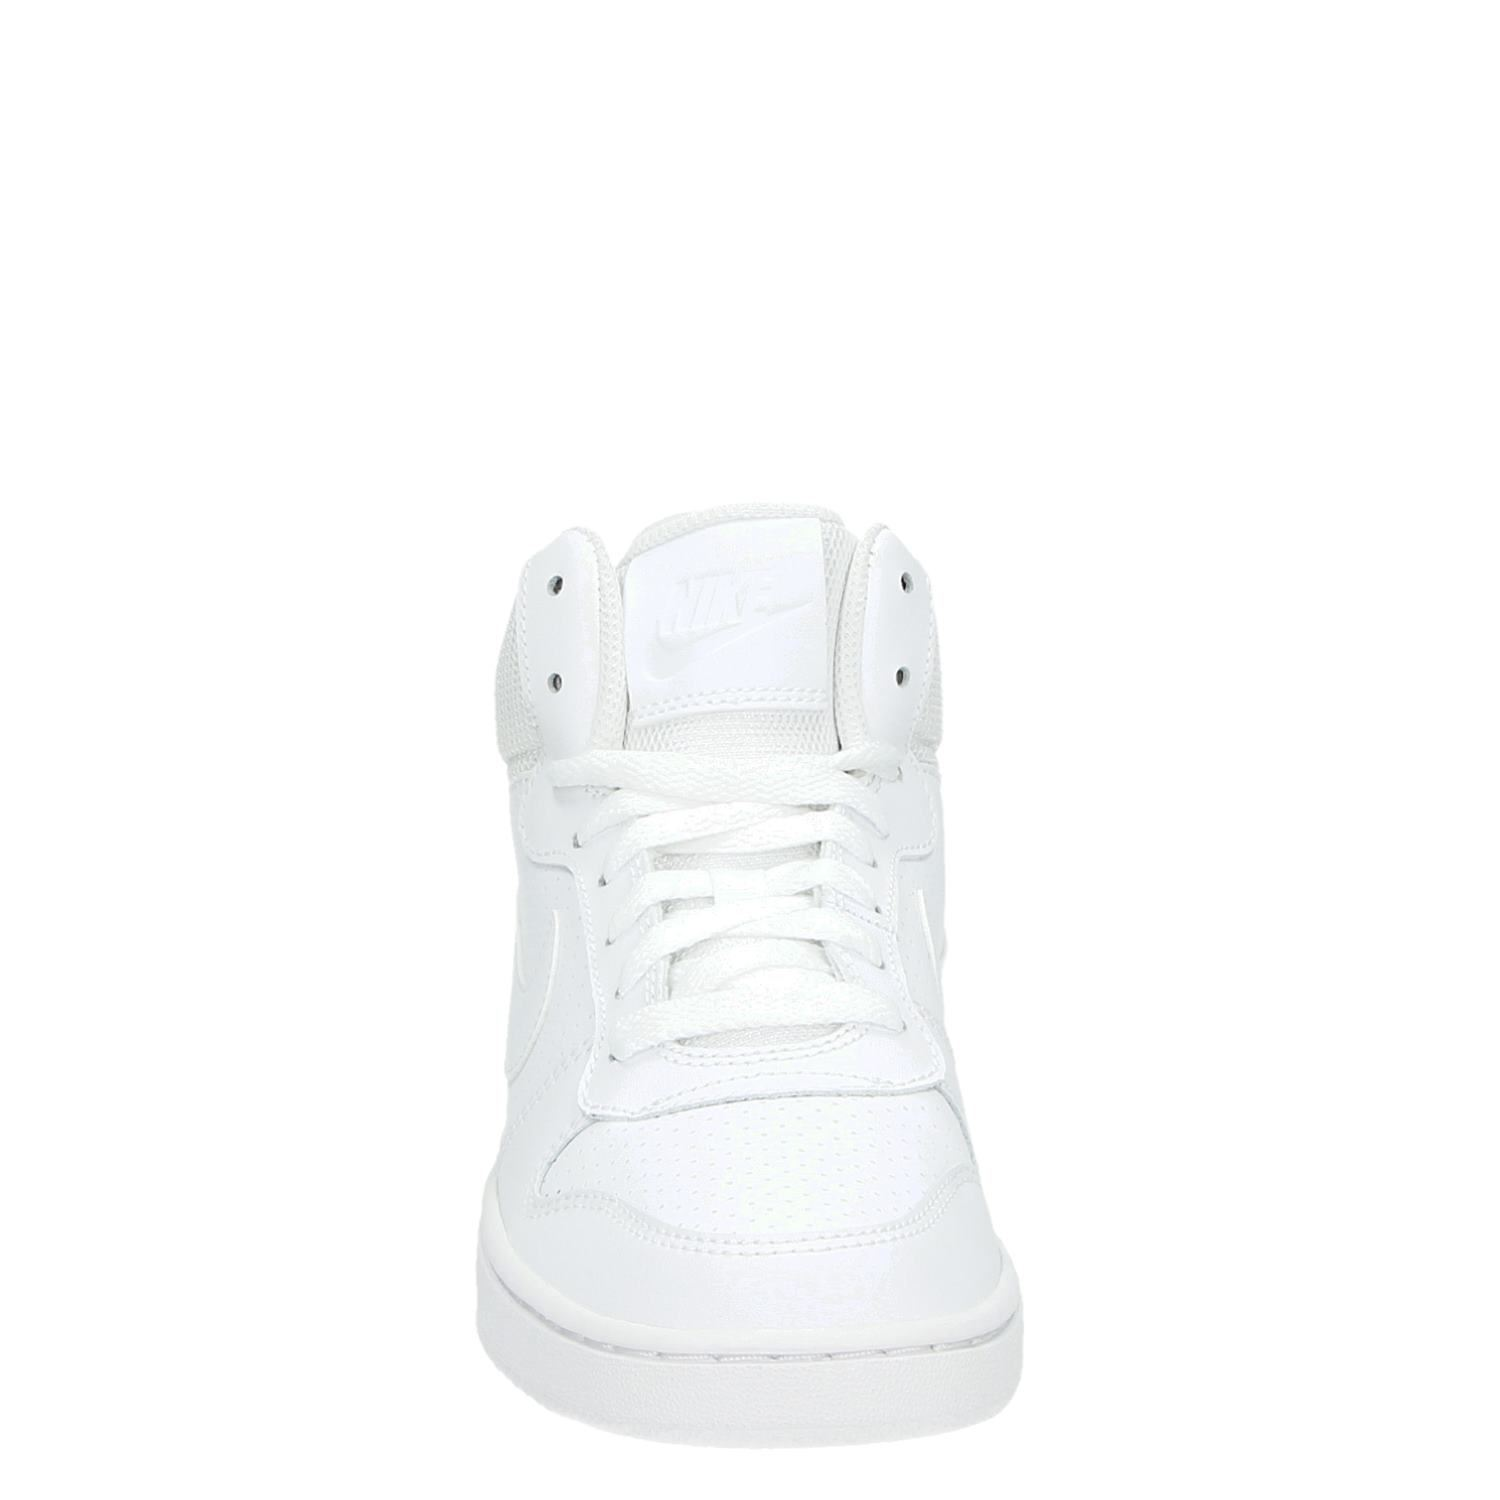 Nike Court Borough Mid dames hoge sneakers wit